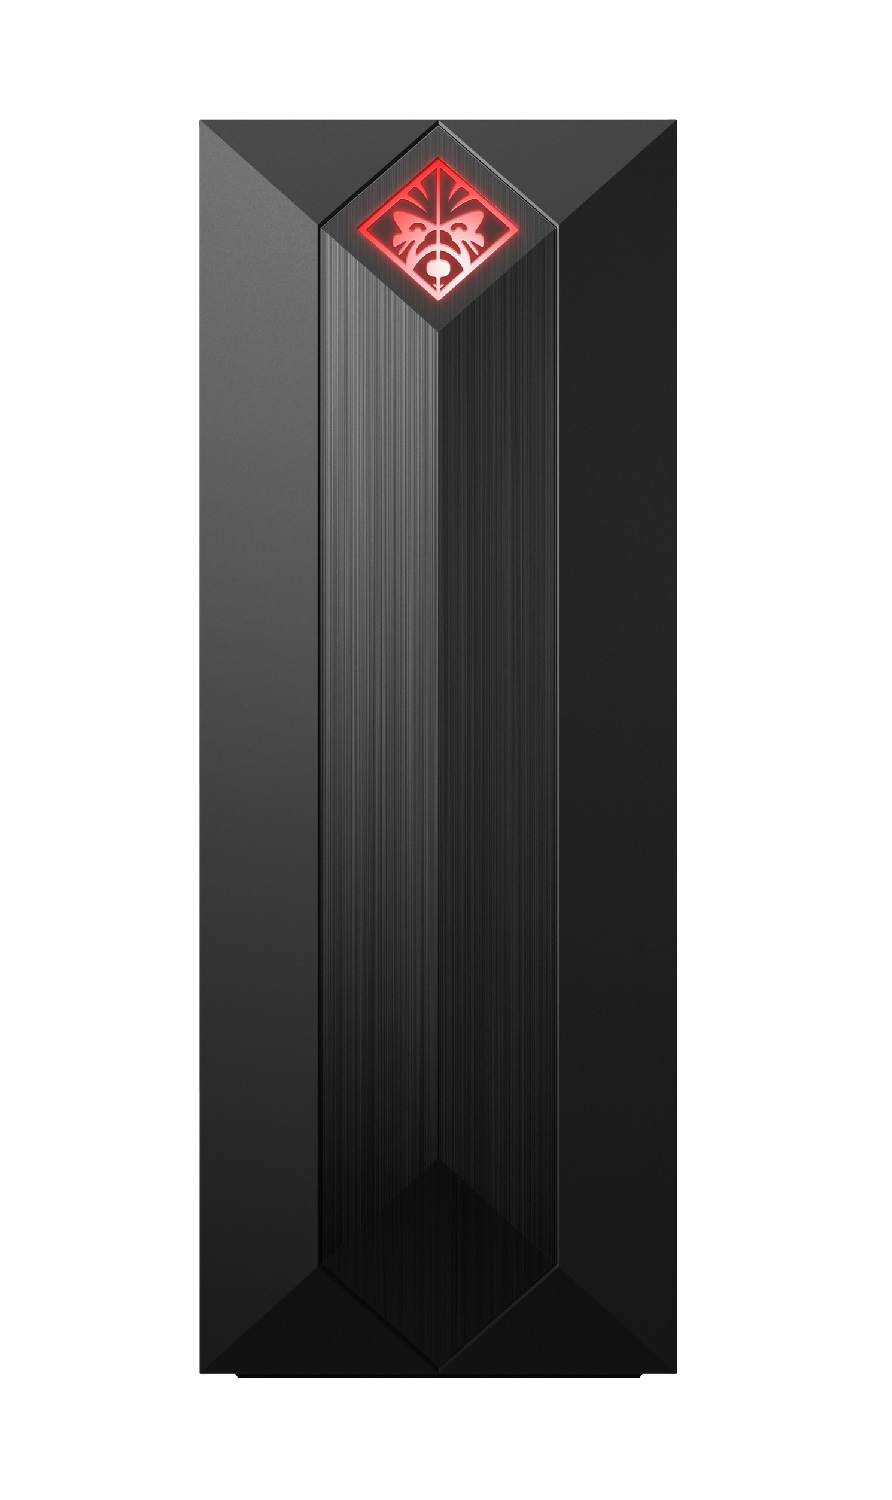 HP OMEN Obelisk DT 875-1002ne Gaming Desktop i9-9900K 3.6GHz/HyperX 32GB/3TB HDD+512 SSD/GeForce RTX 2080 8GB/Windows 10 Home